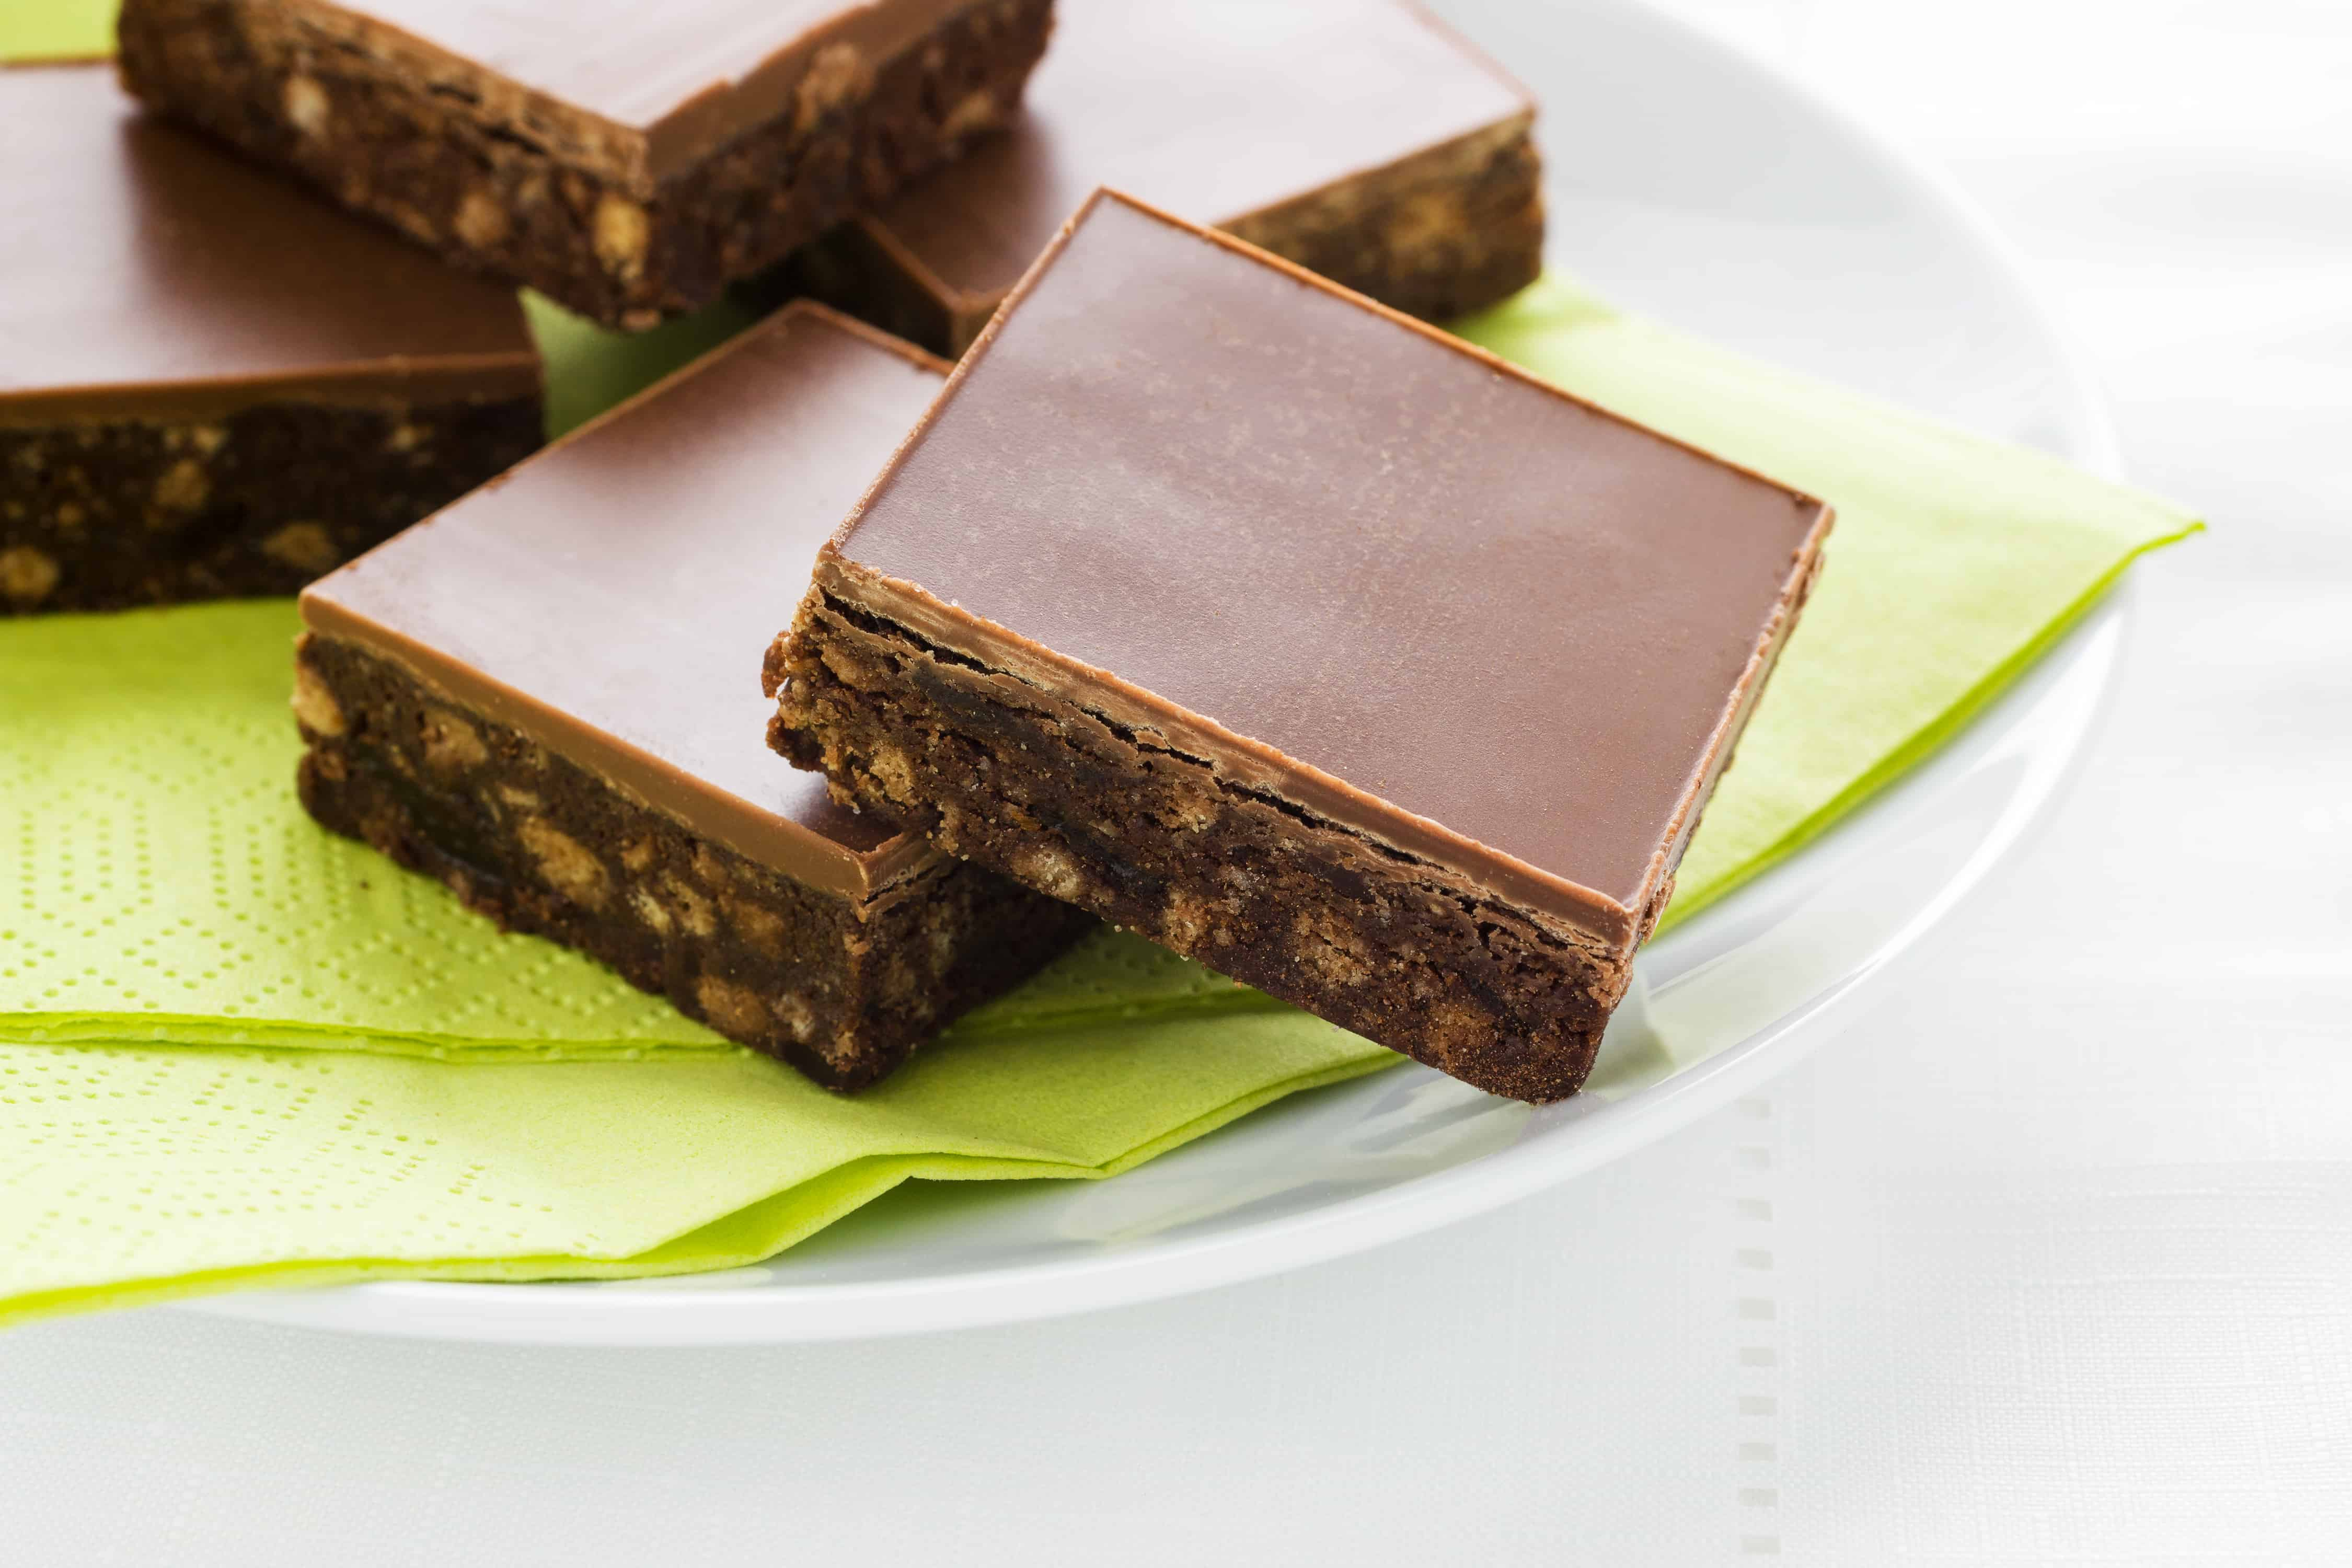 Chocolate fudge squares on a white plate and green napkin